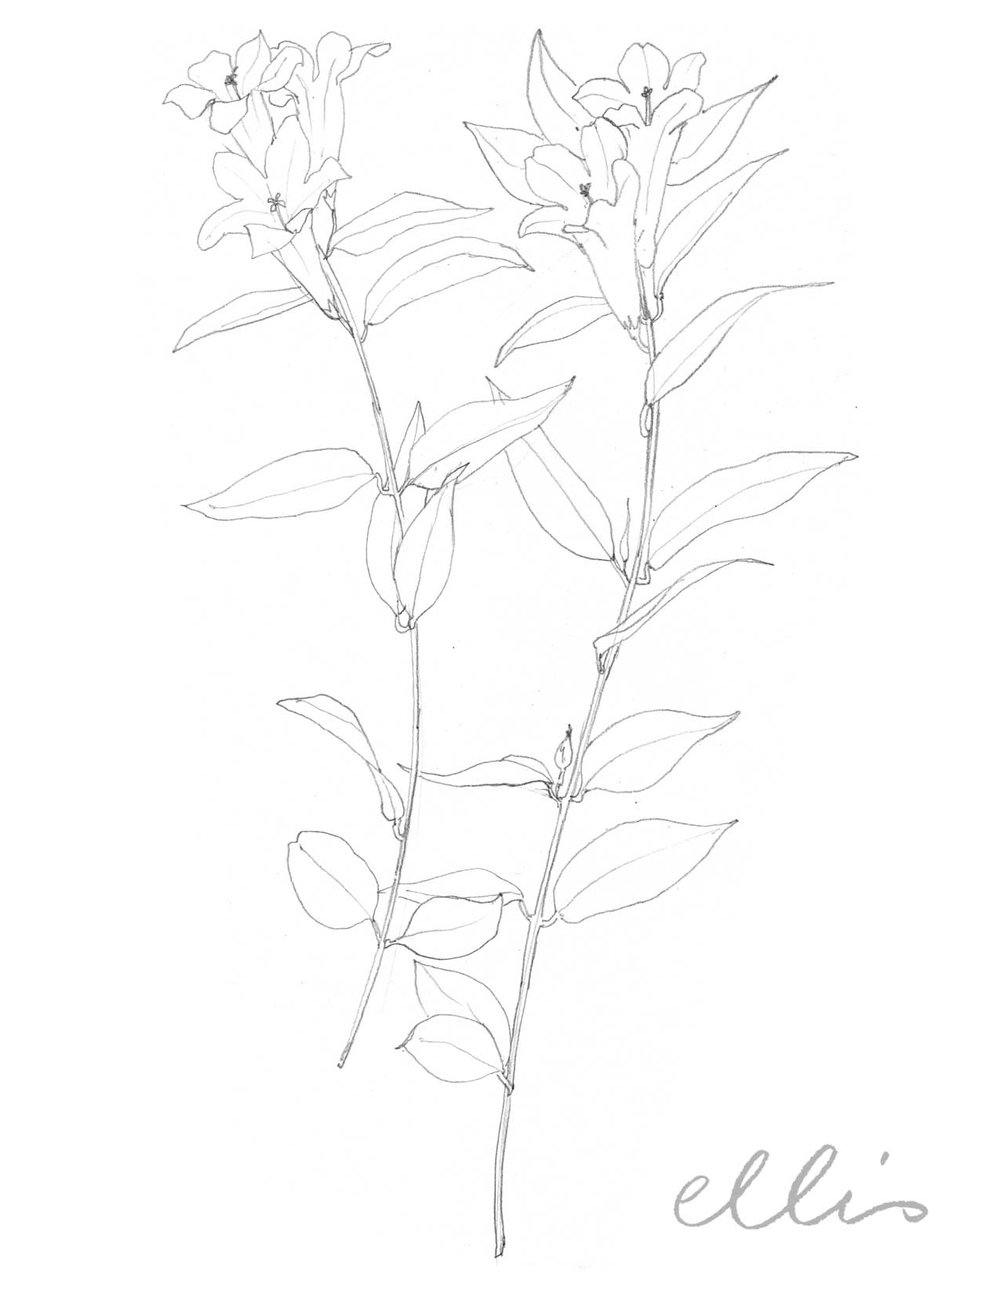 Erin Ellis_100 days project botanical drawings_2013-96.jpg